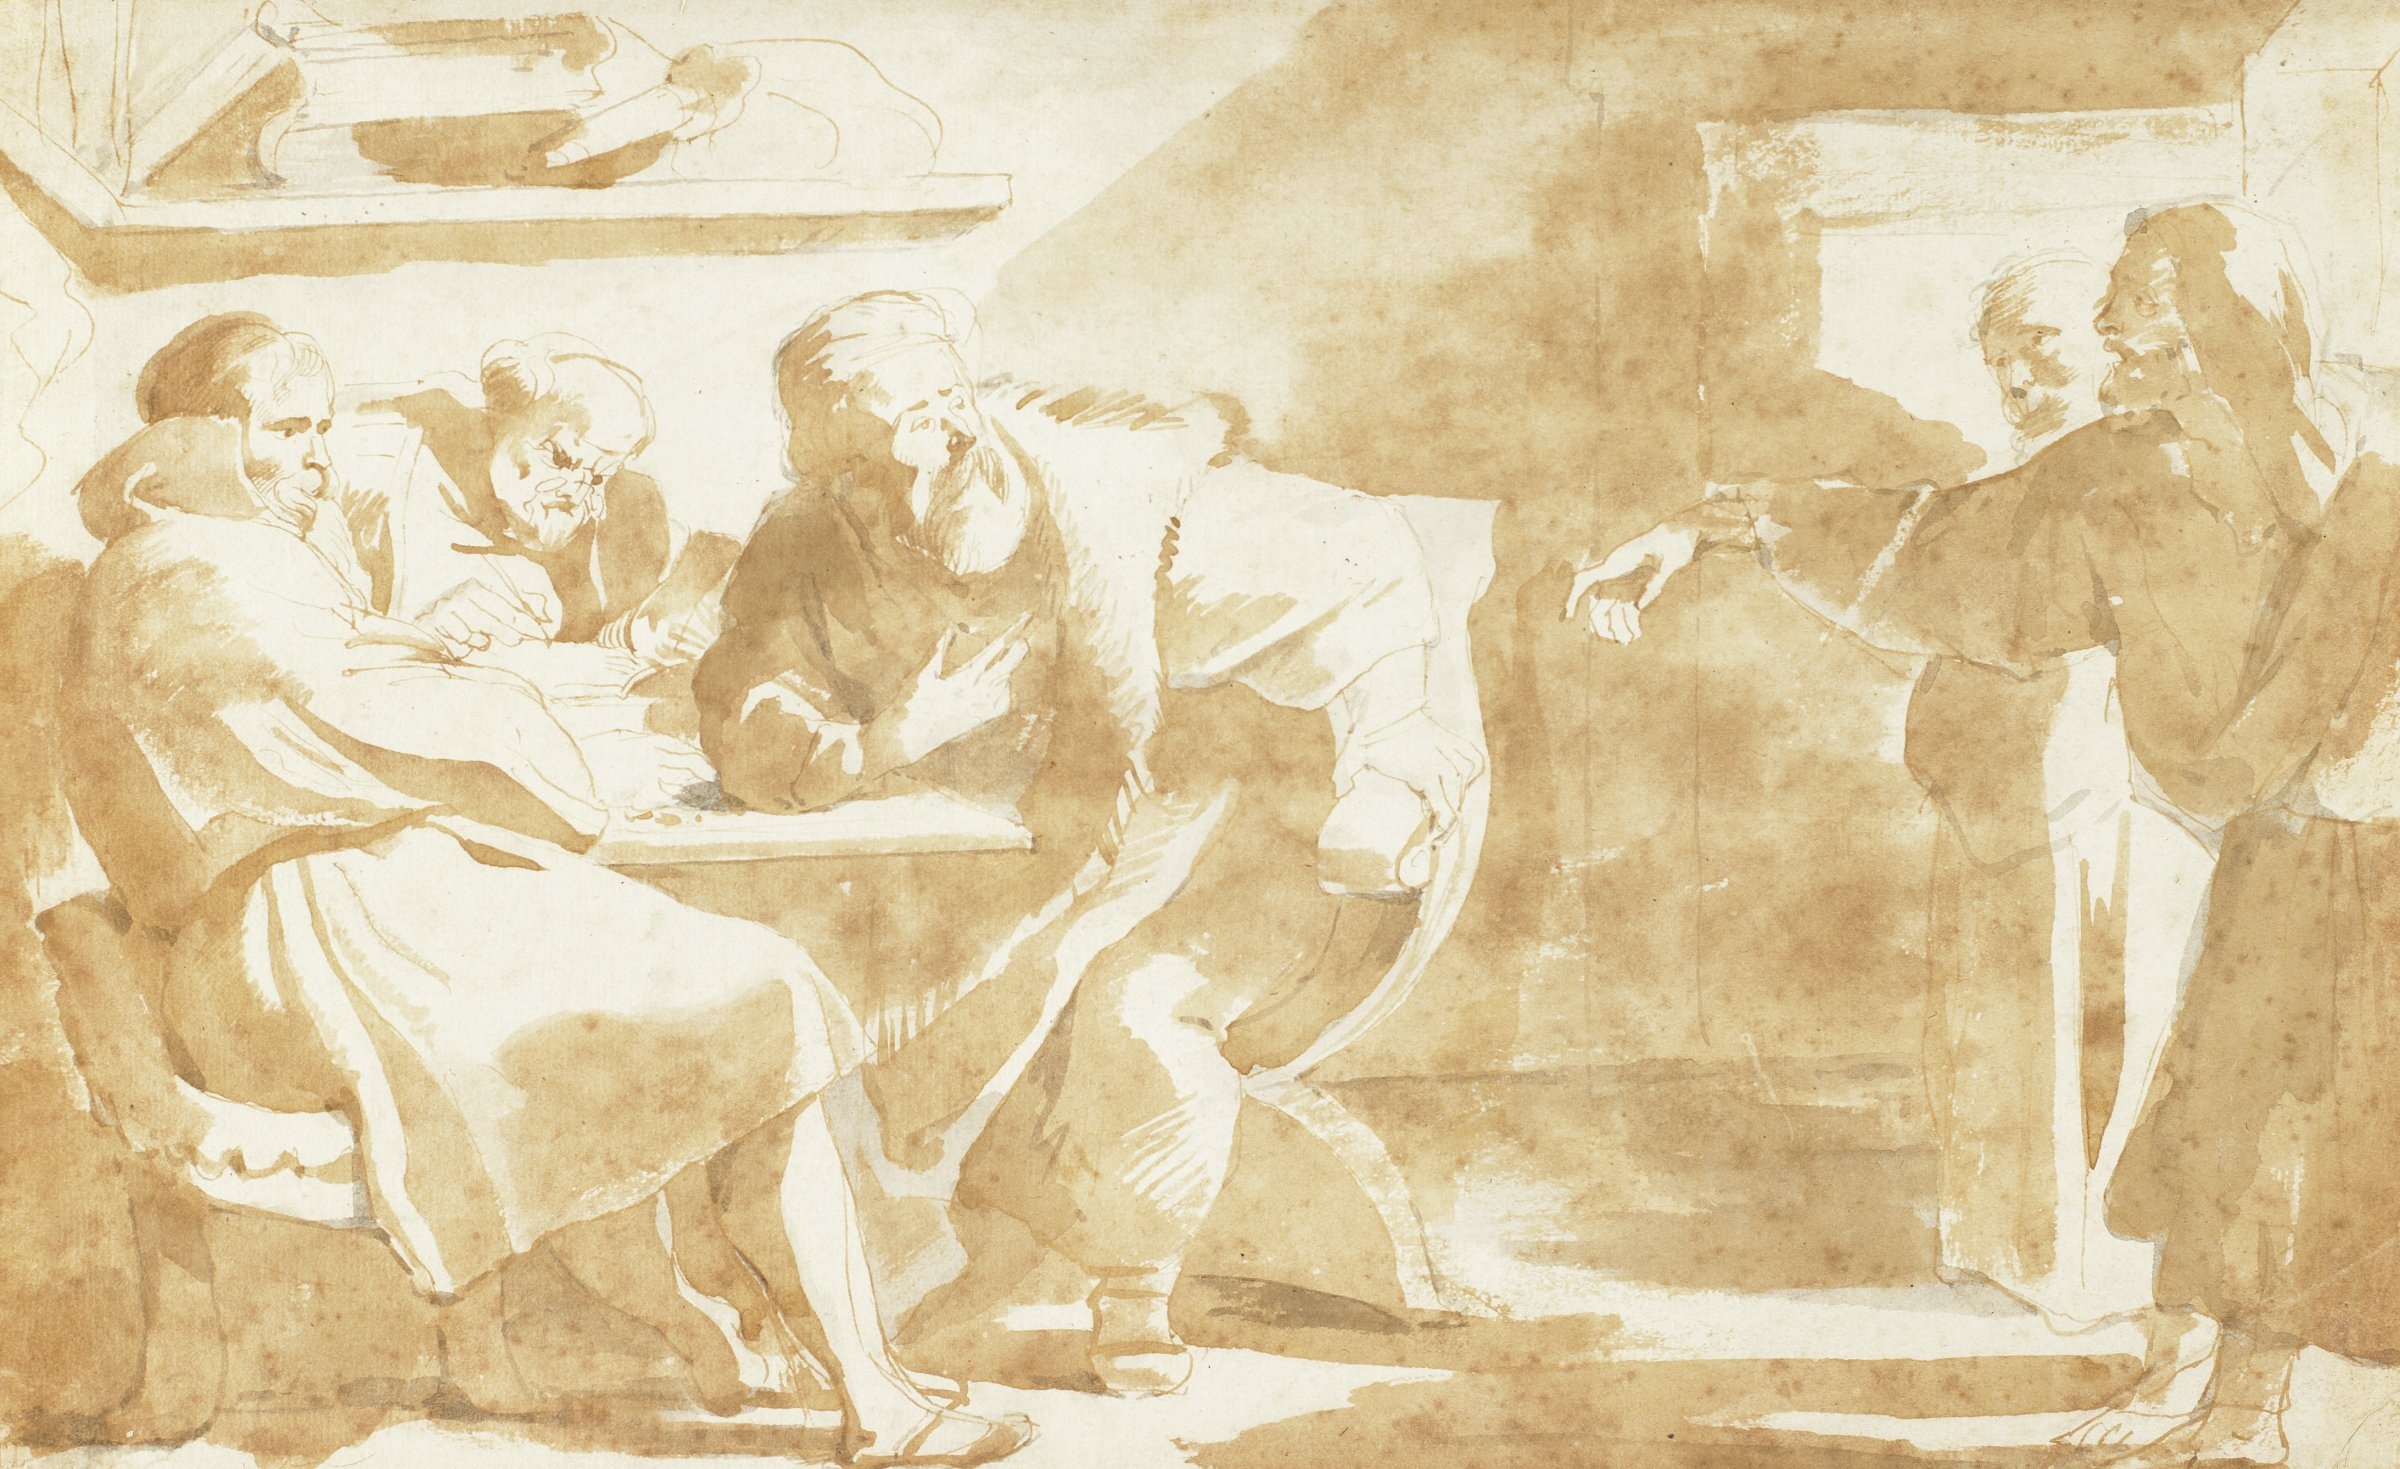 On left half of sheet, three men seated at a table. The left figure toys with coins on the table; middle figure writes in a book; right figure gestures to himself. To the right are two men standing in a doorway, one with an upraised hand pointing to the seated man who gestures questioningly to himself in response.